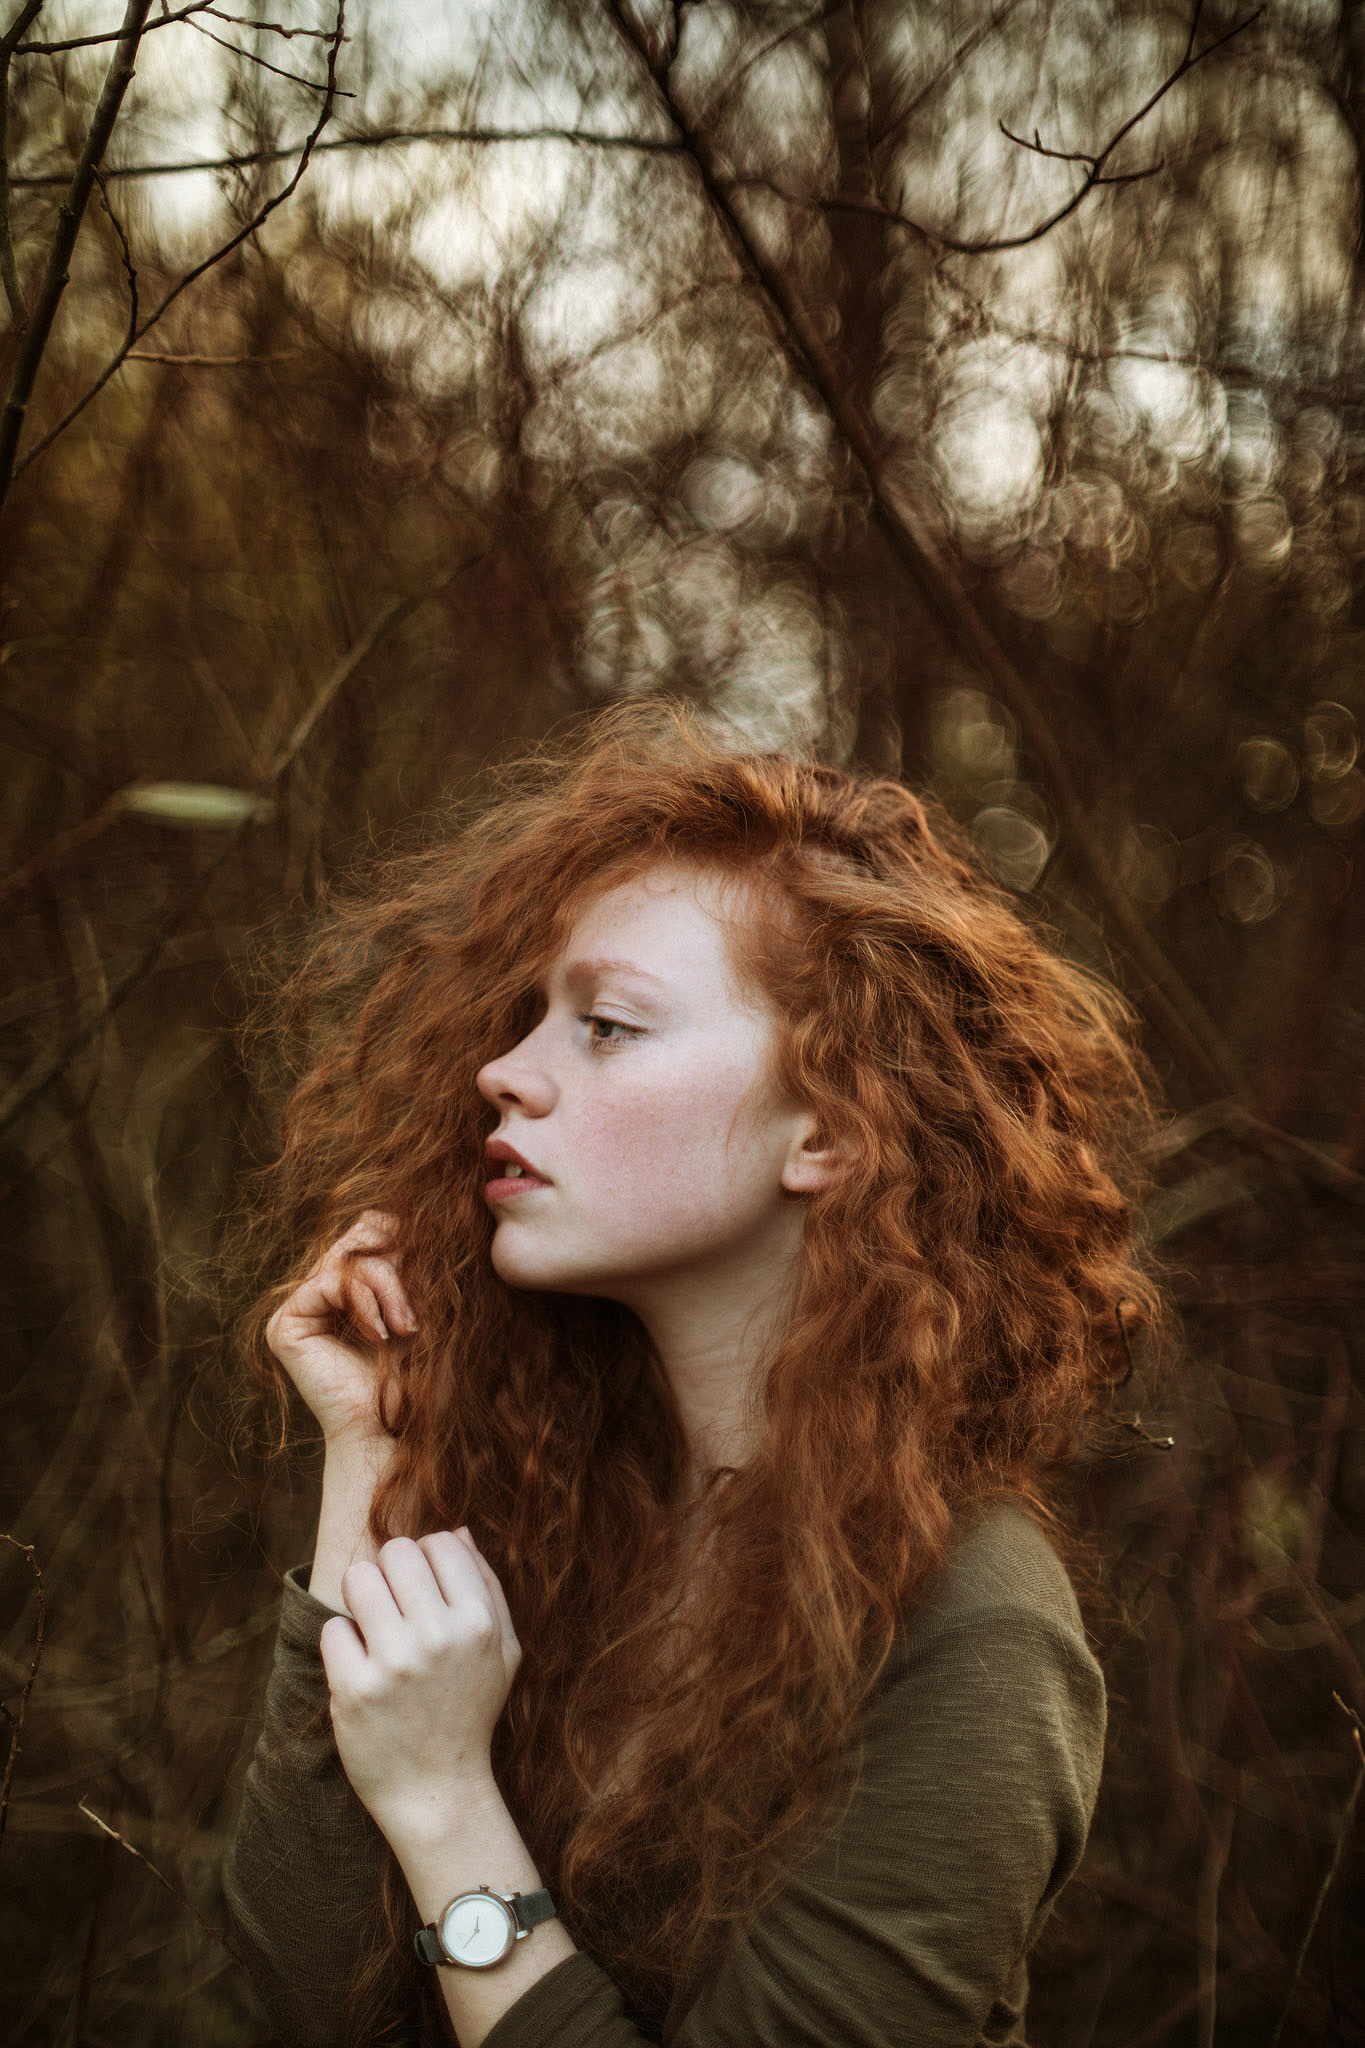 Image by Maximilian Schumacher edited with 1888AD Presets & Profiles